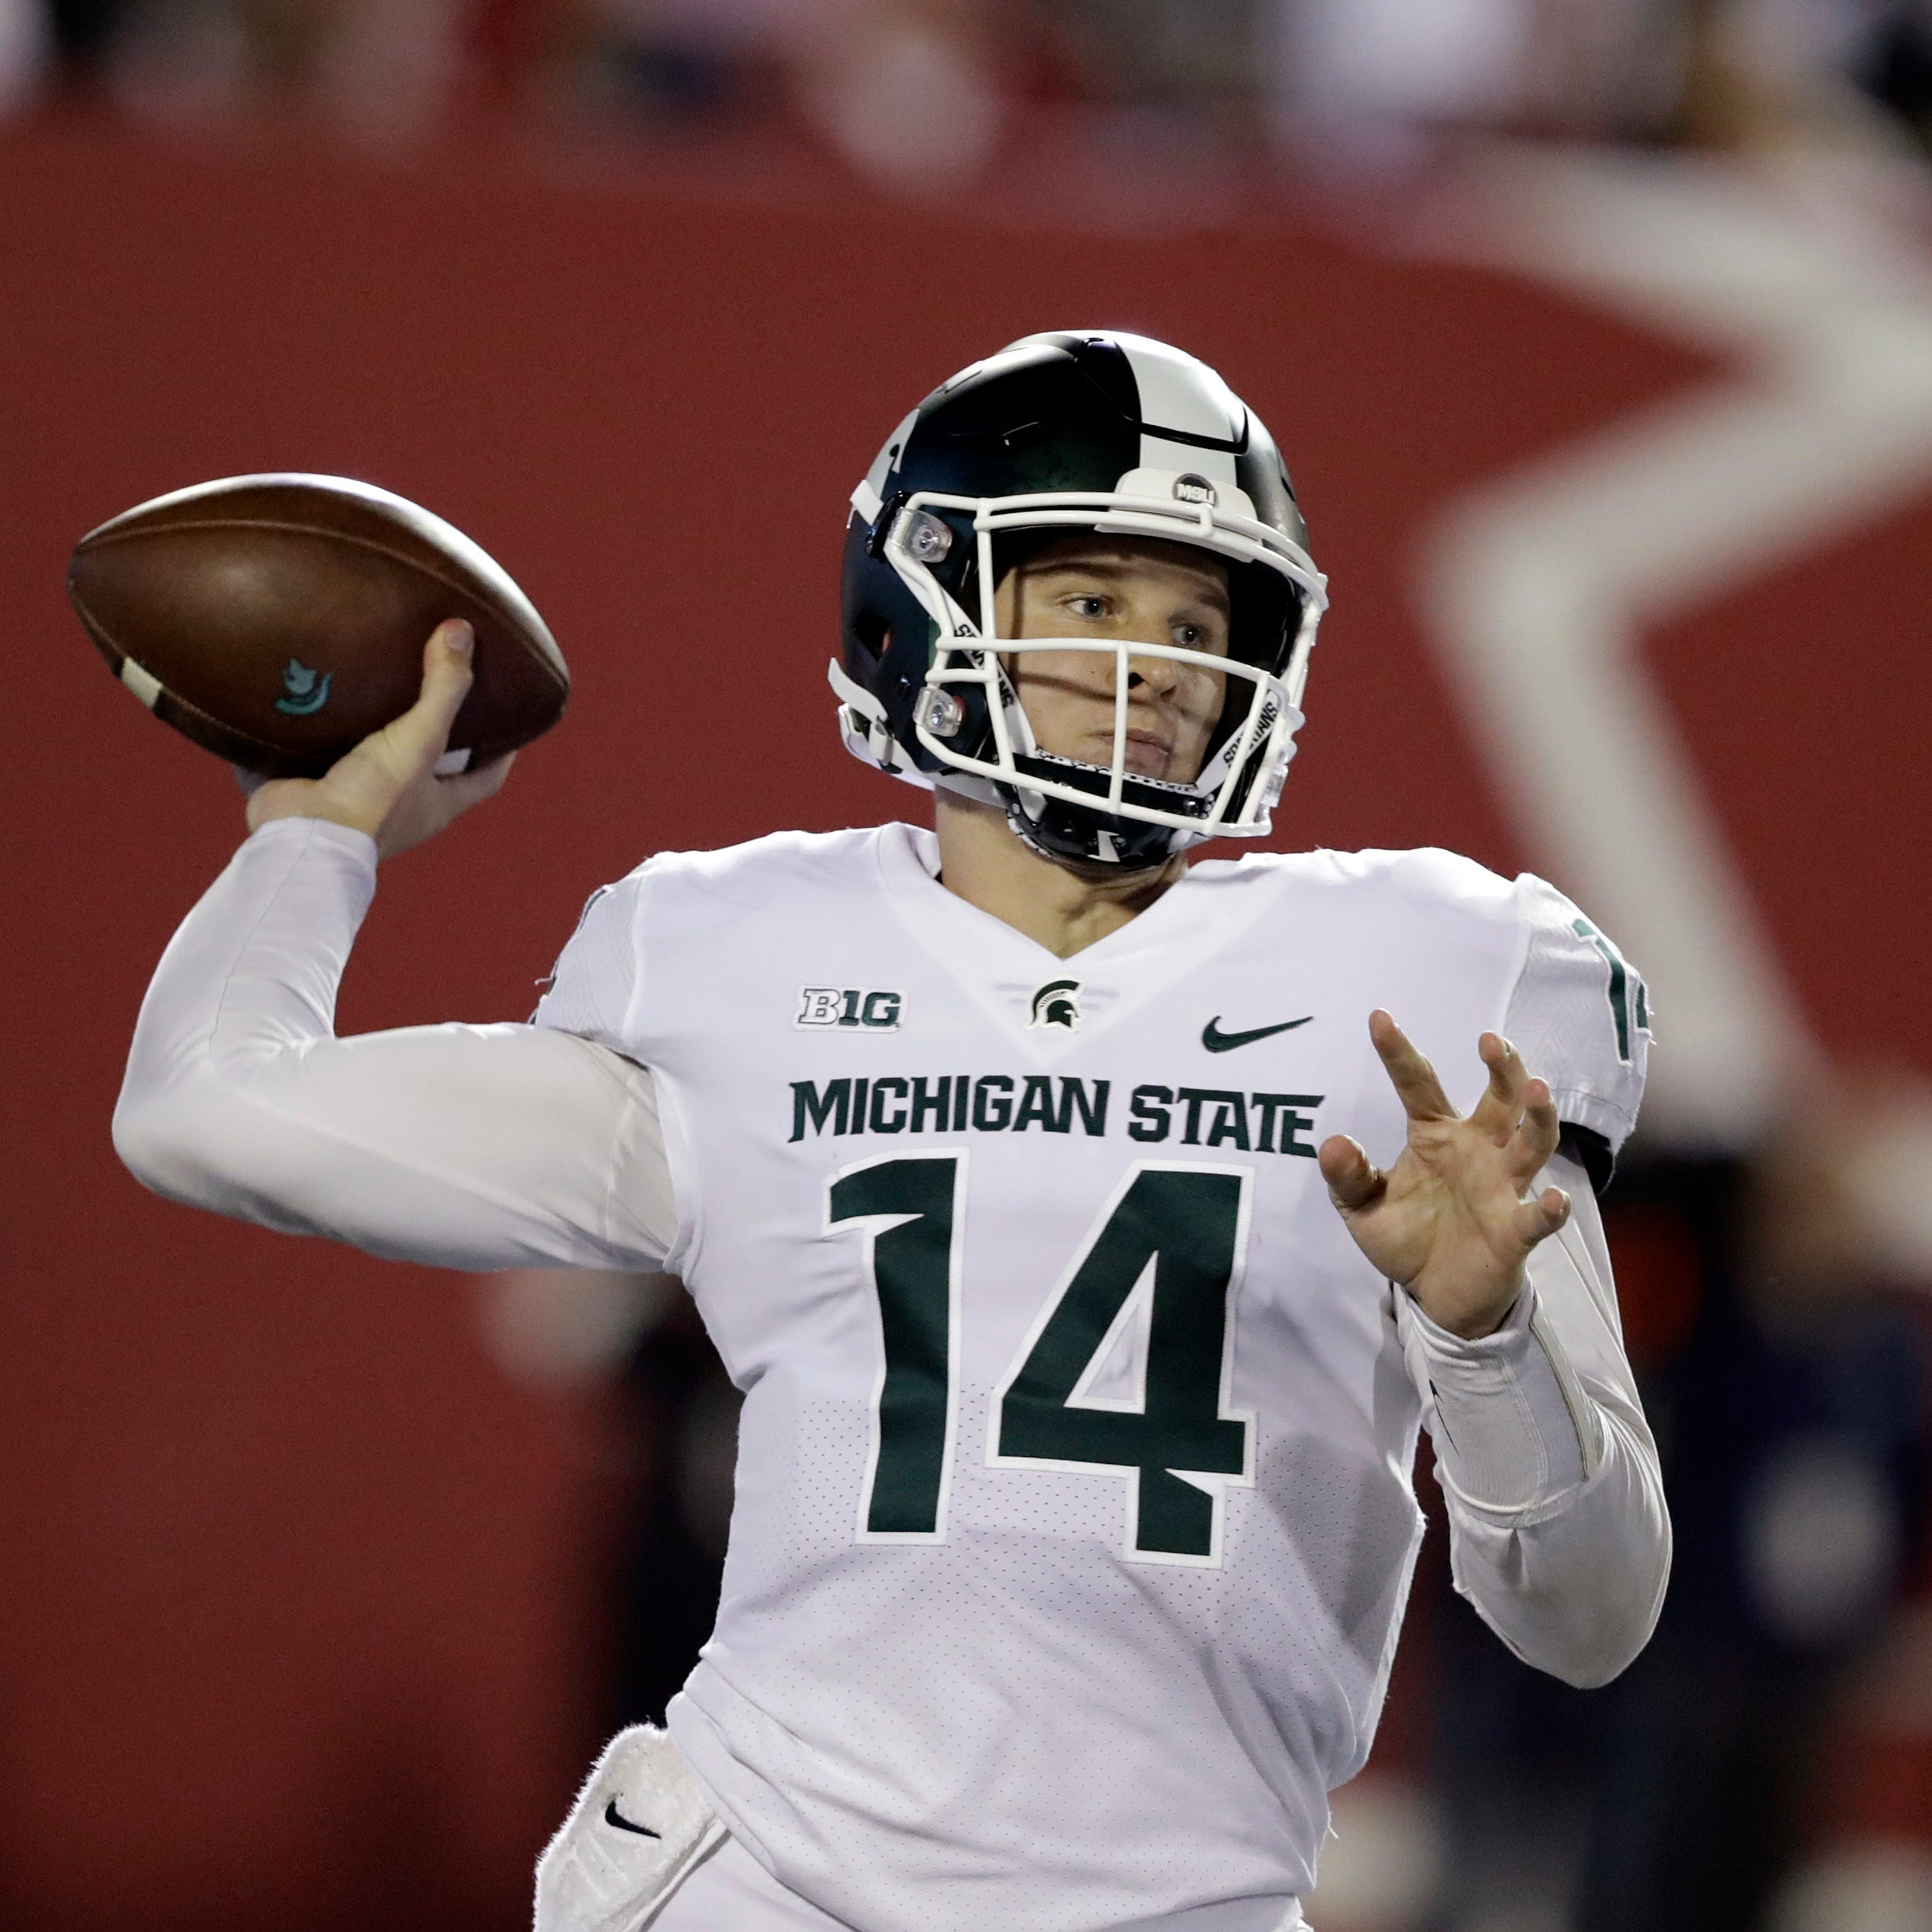 Michigan State's conservative play calling nearly doomed it vs. Indiana